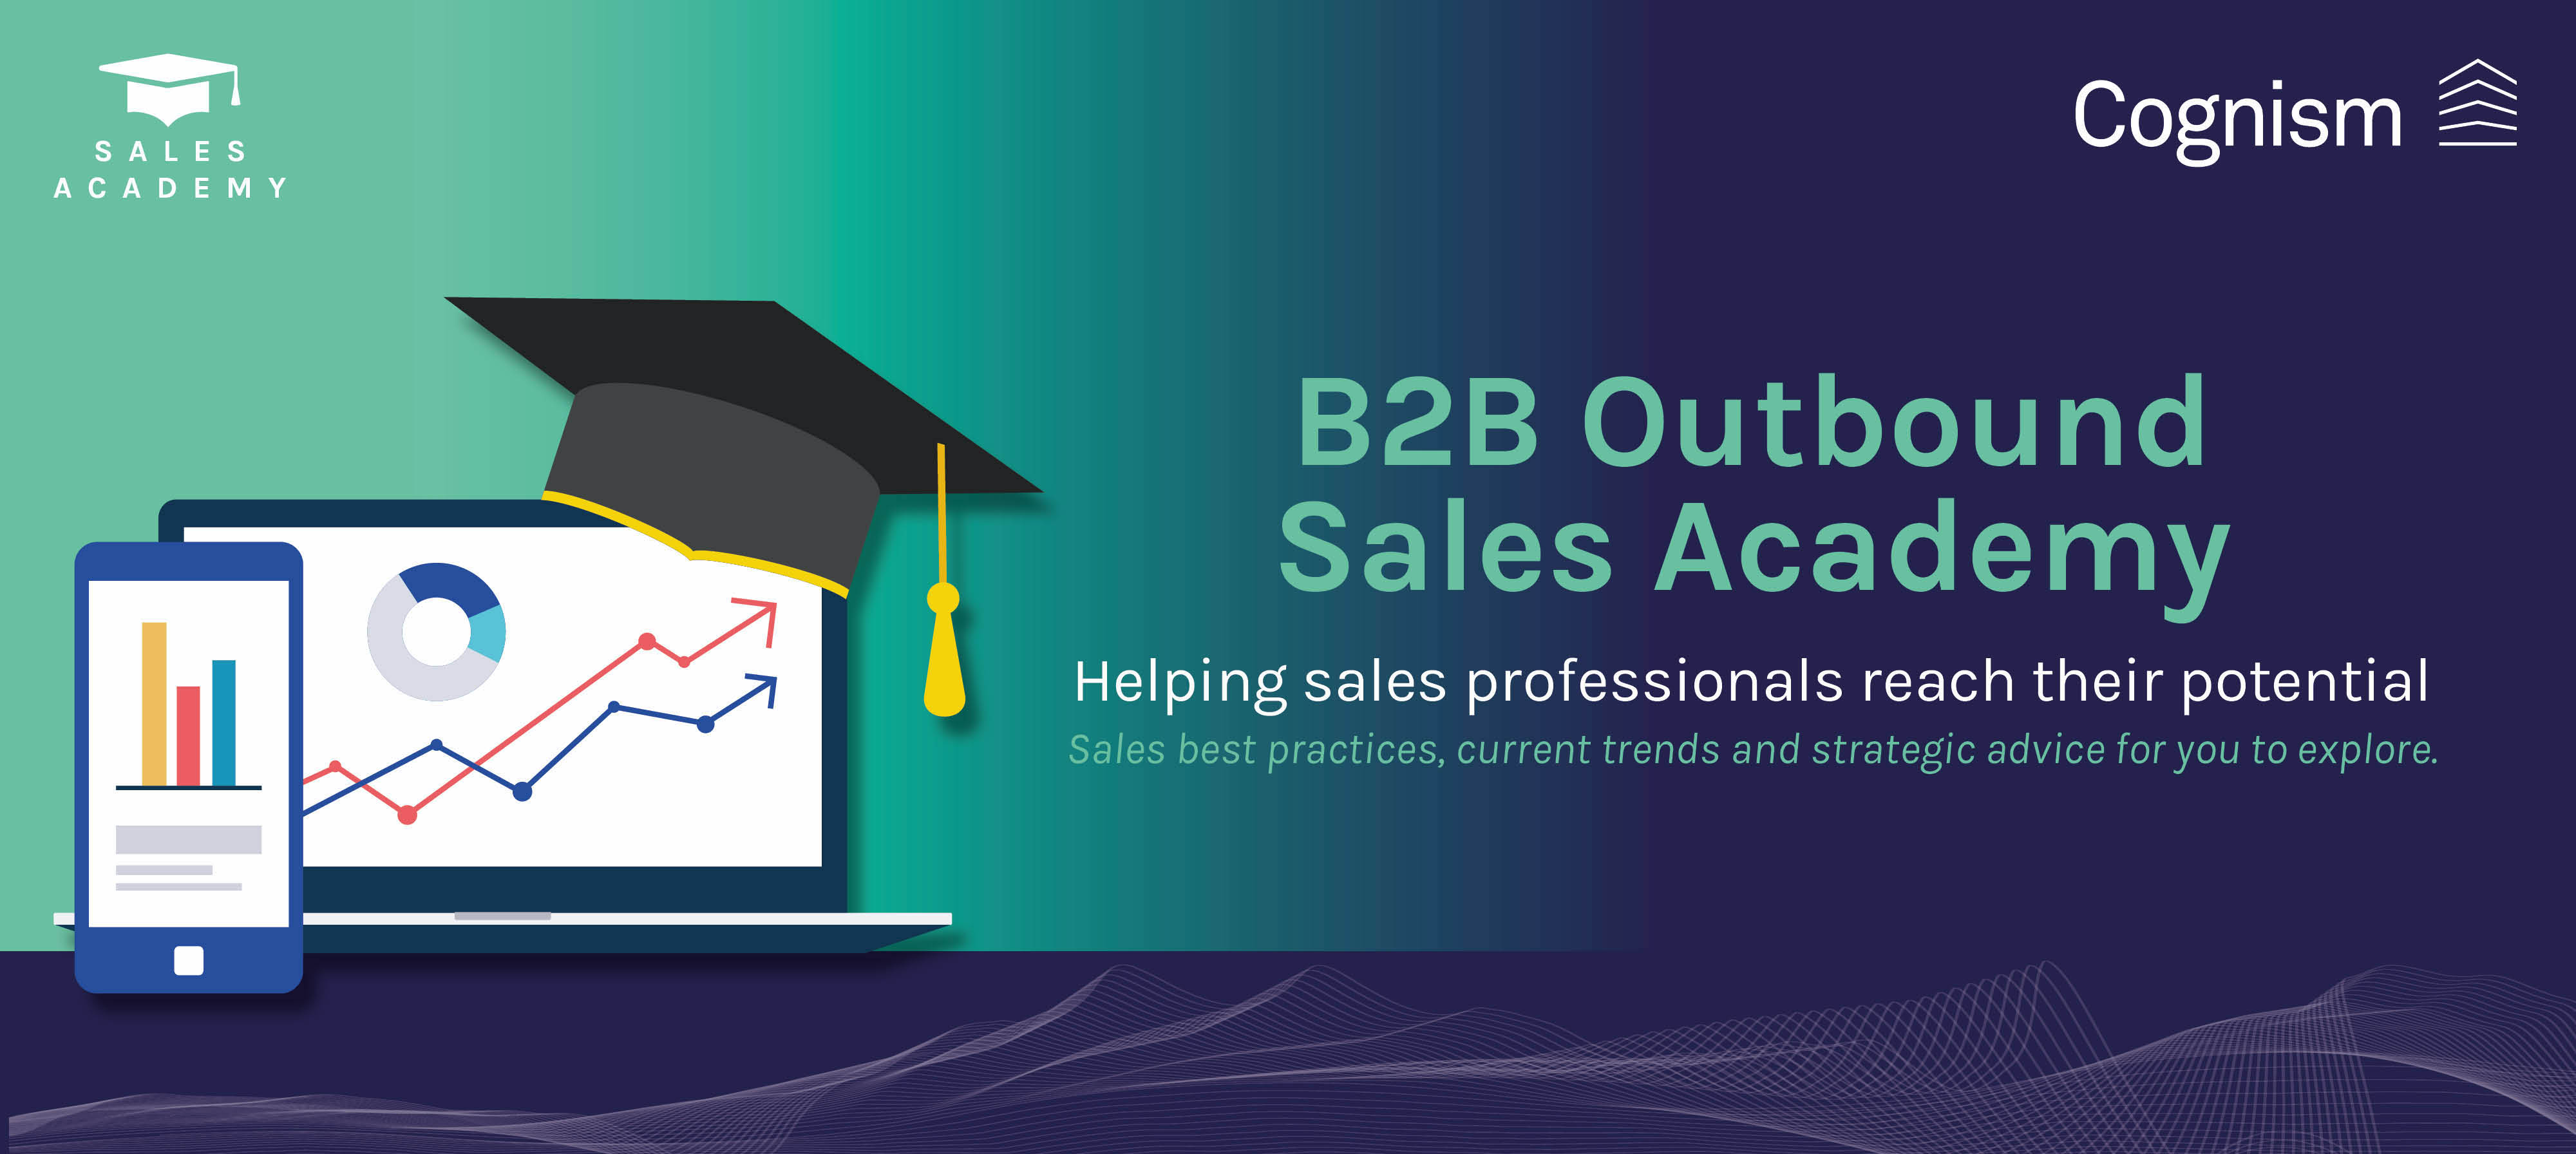 Sales Academy Resource creative